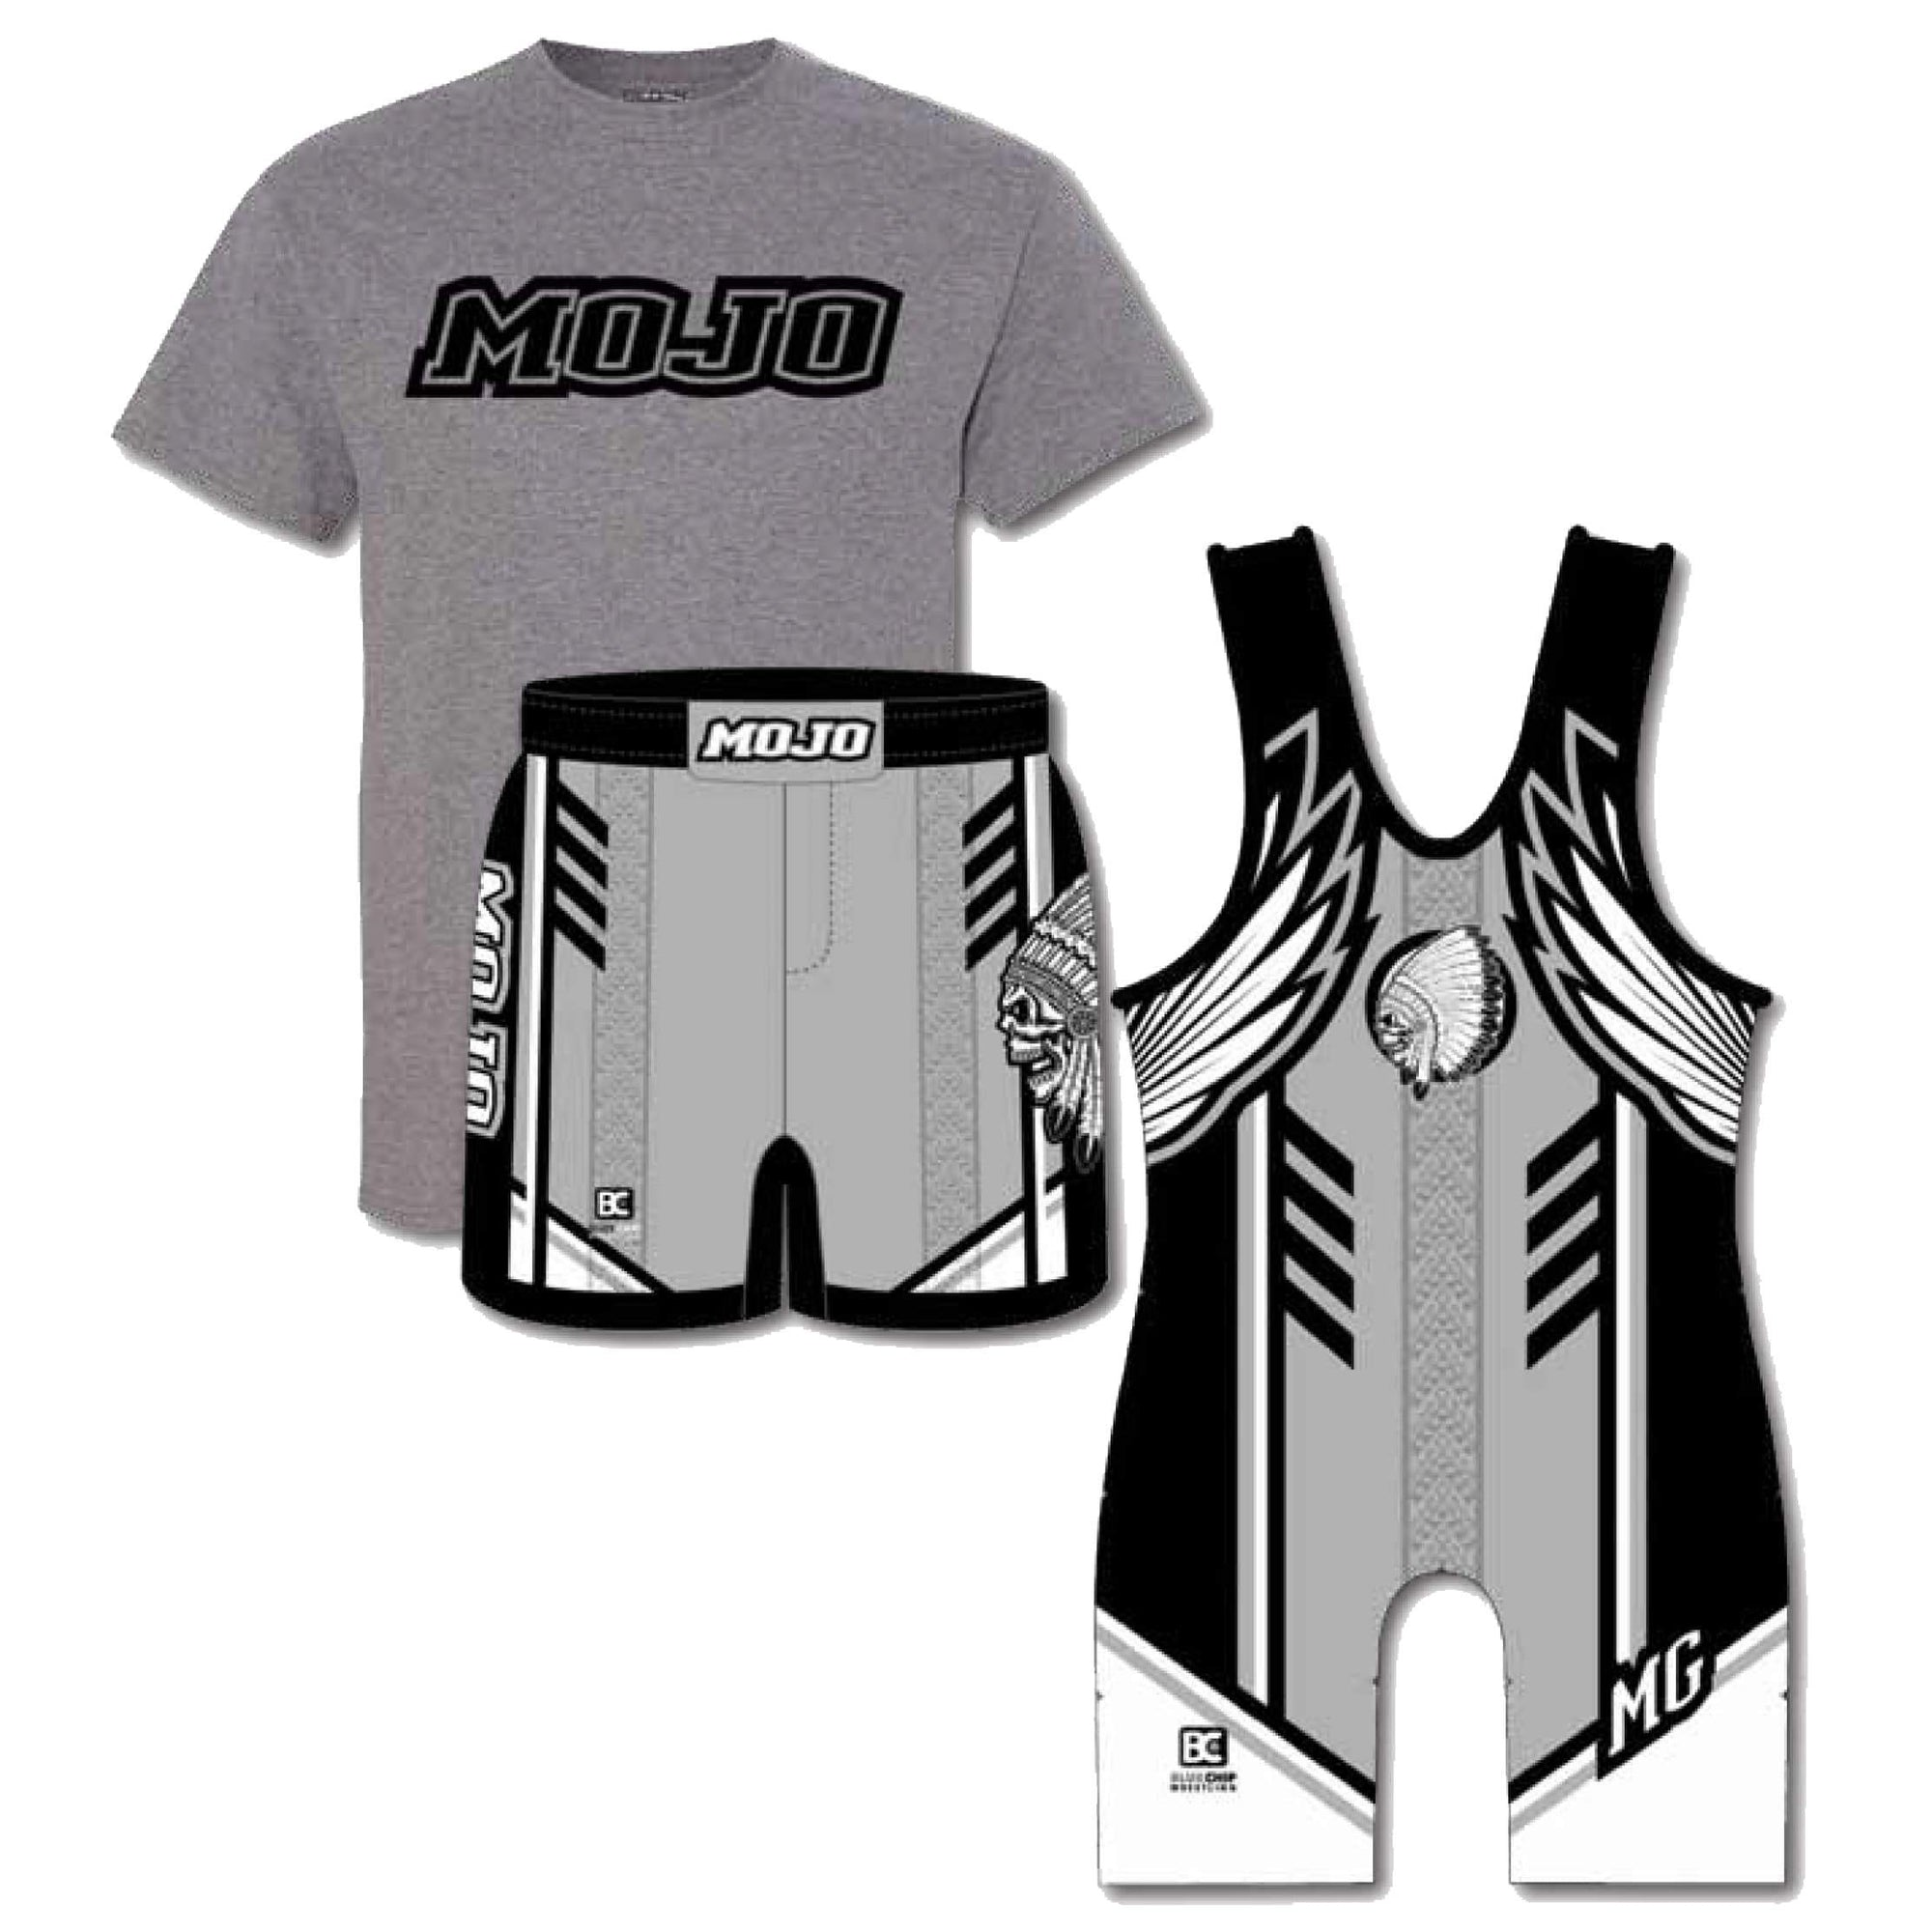 Competition Pack #4 (Tee + Singlet + Wrestling Short)